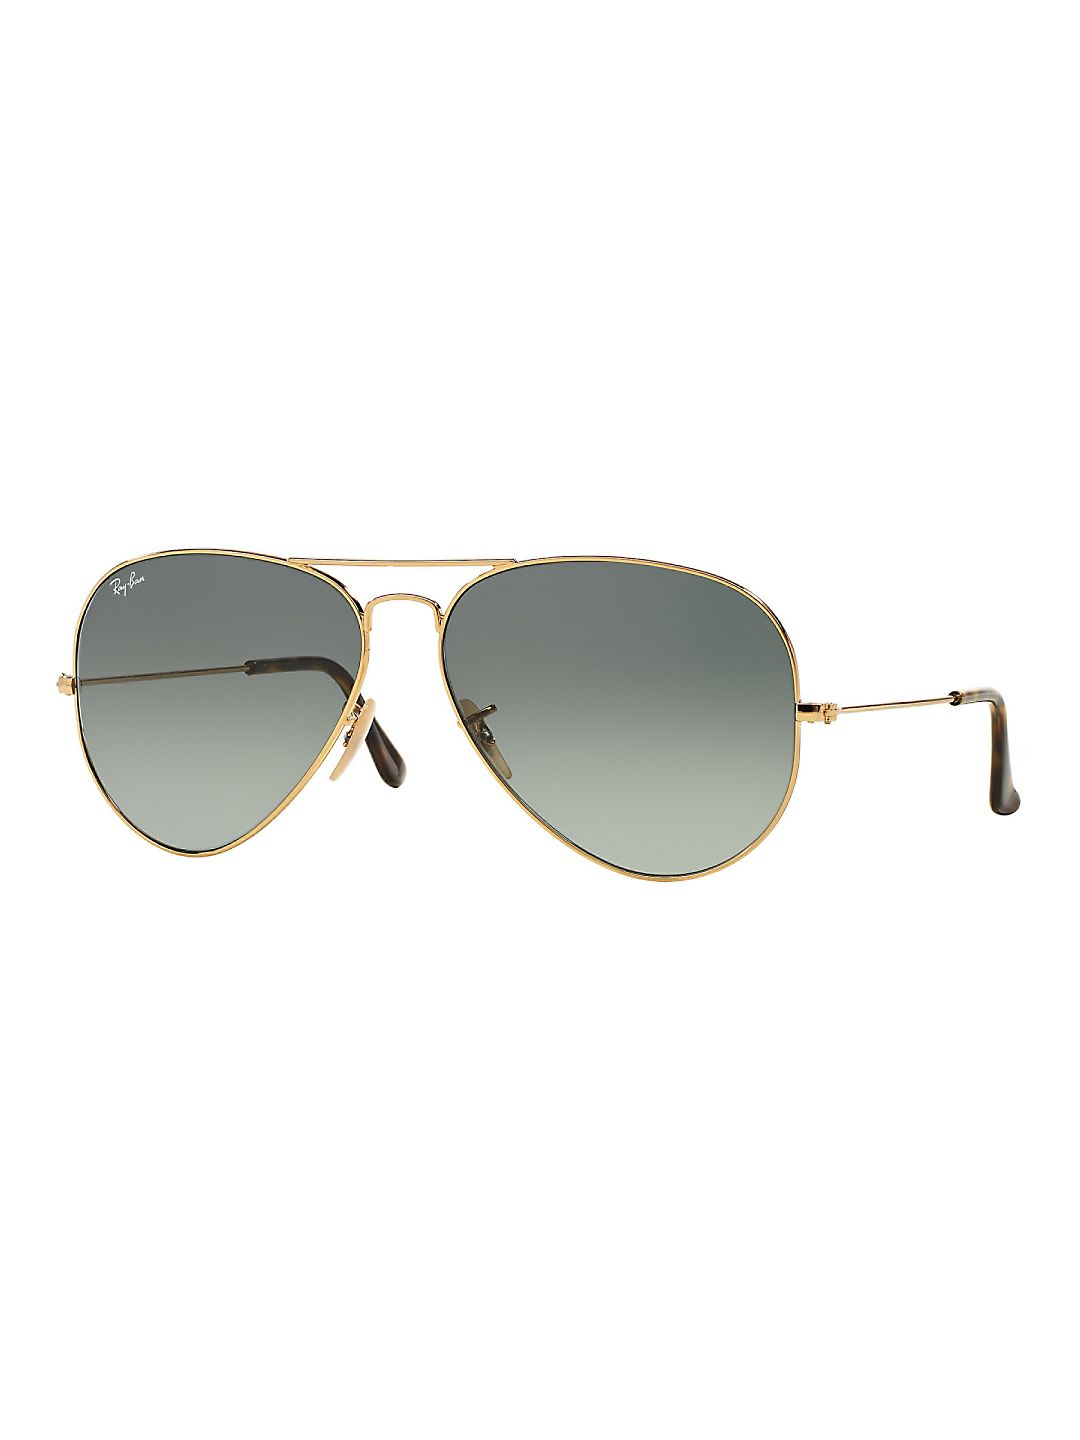 Ray-Ban RB3025 Classic Aviator Sunglasses, 58MM, Gradient Lens